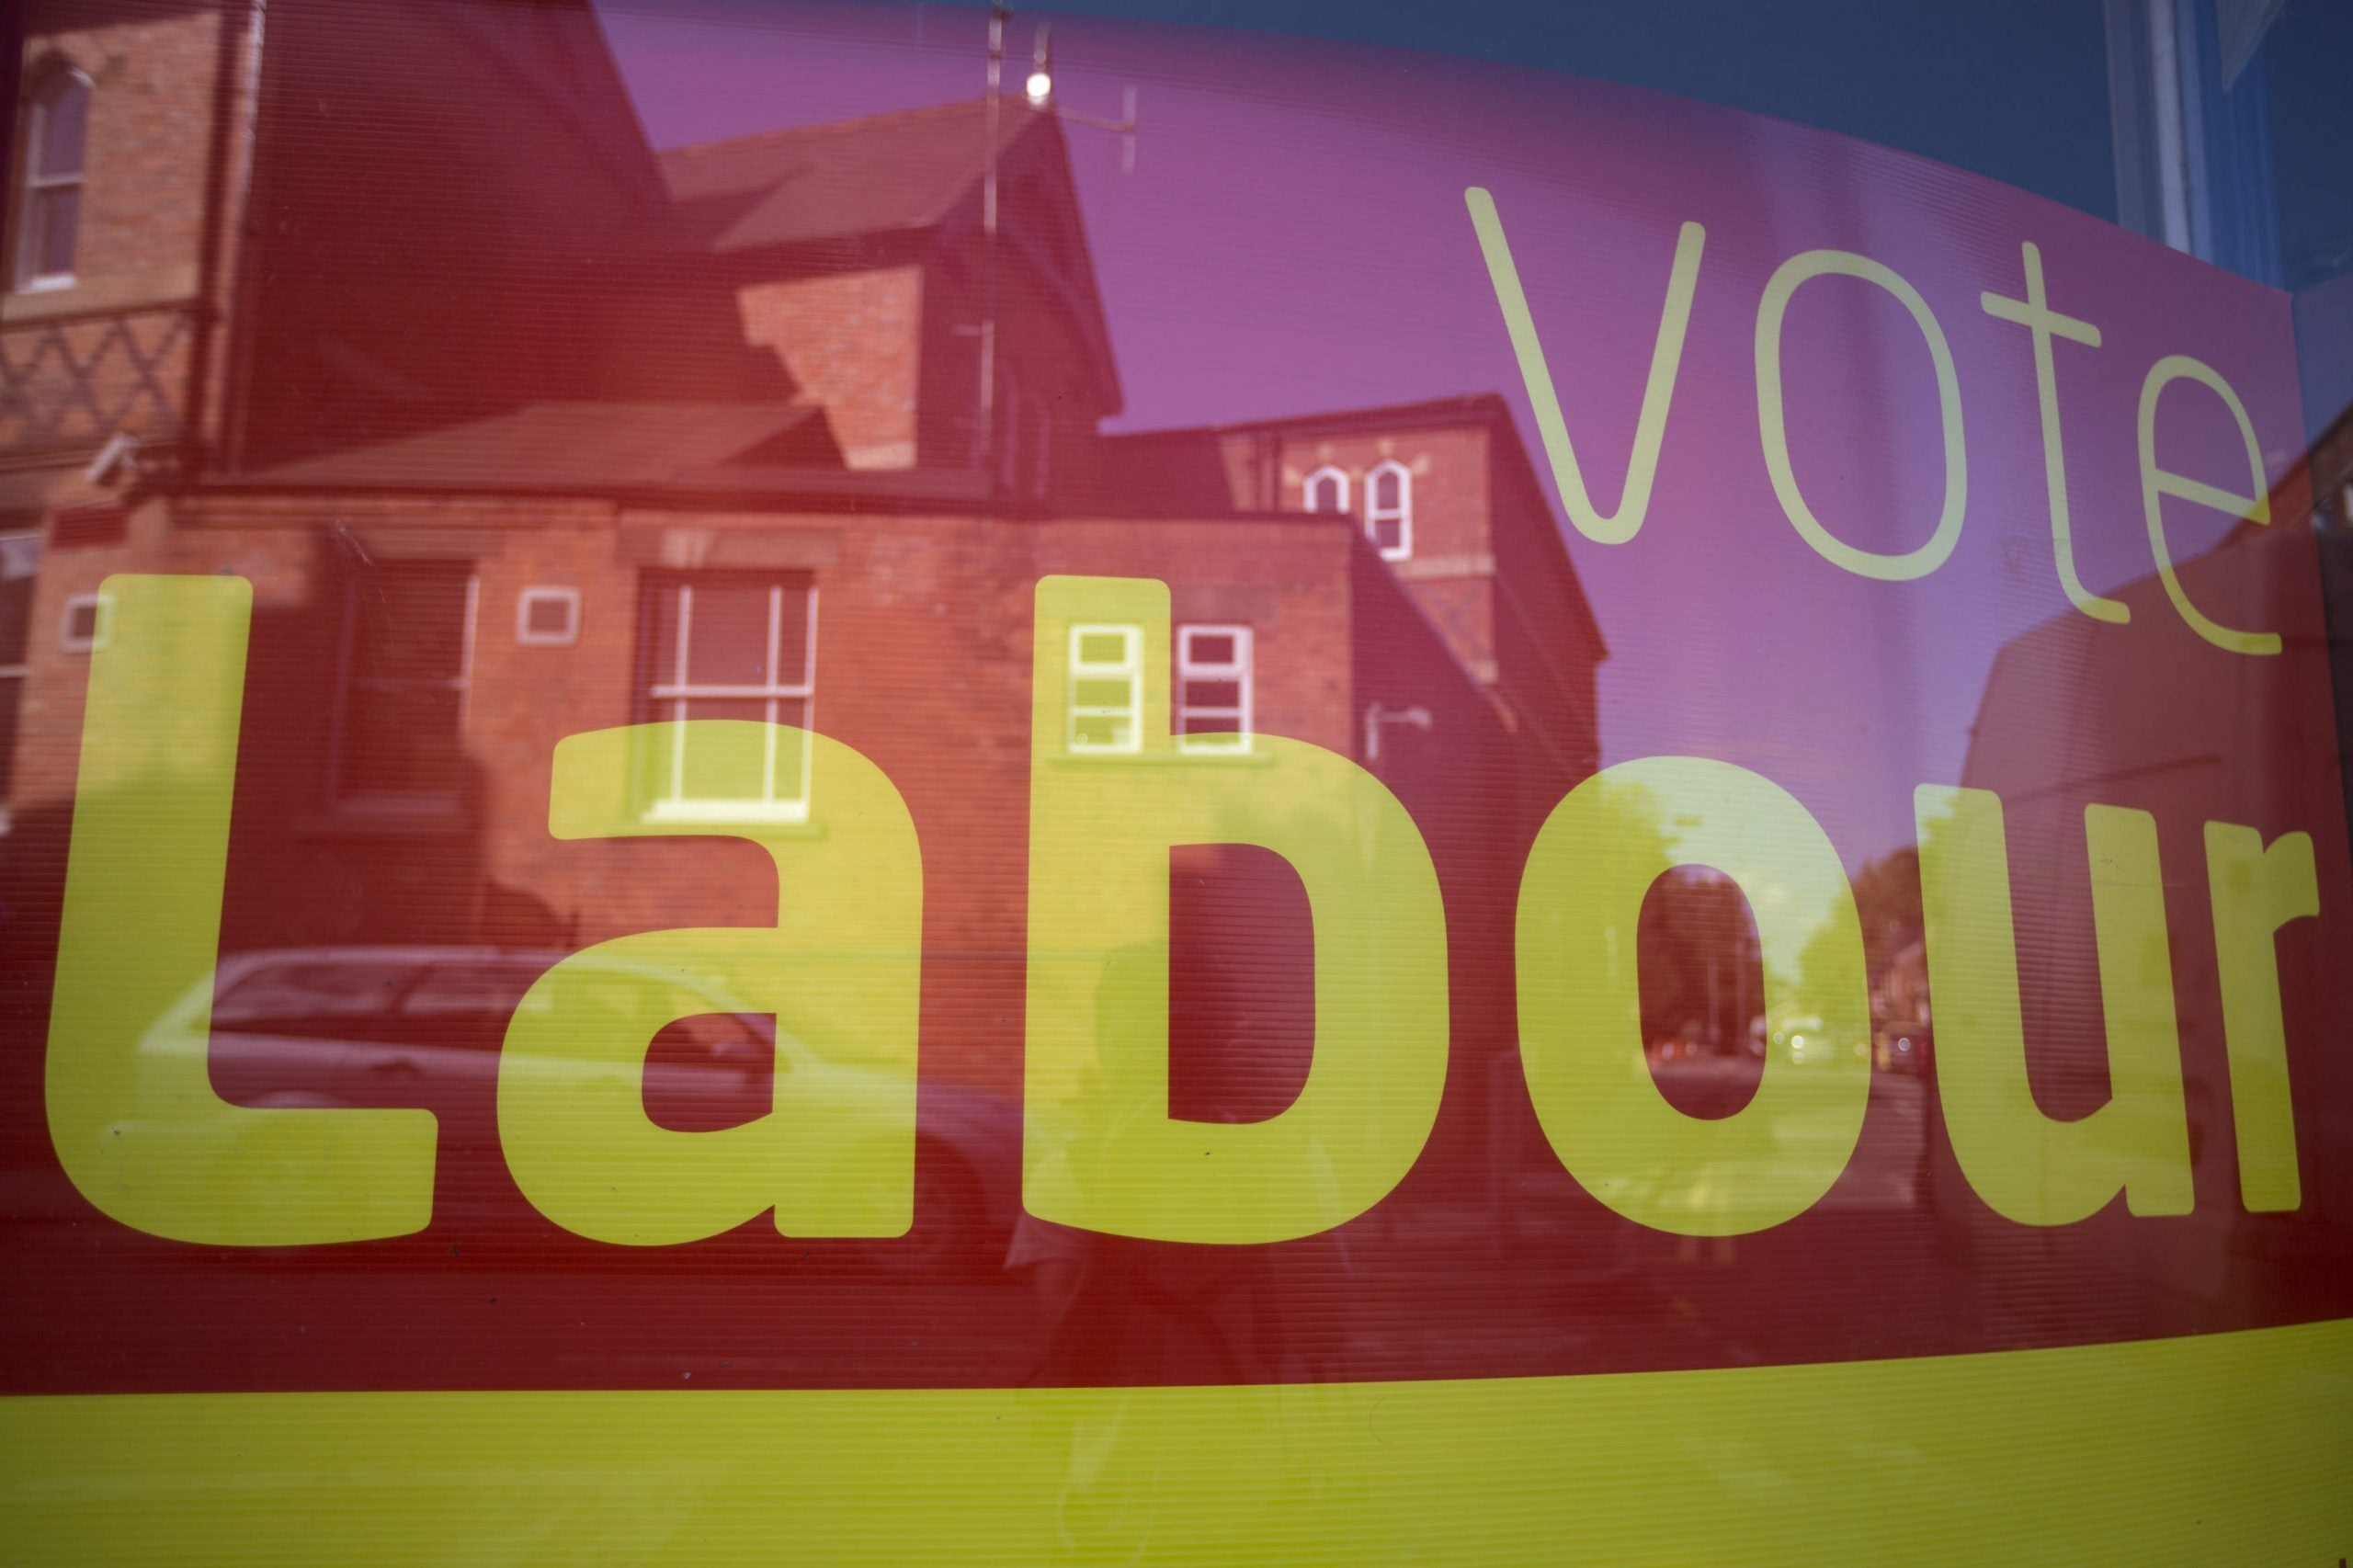 If it wants to be a force for radical change, Labour must face up to why it lost